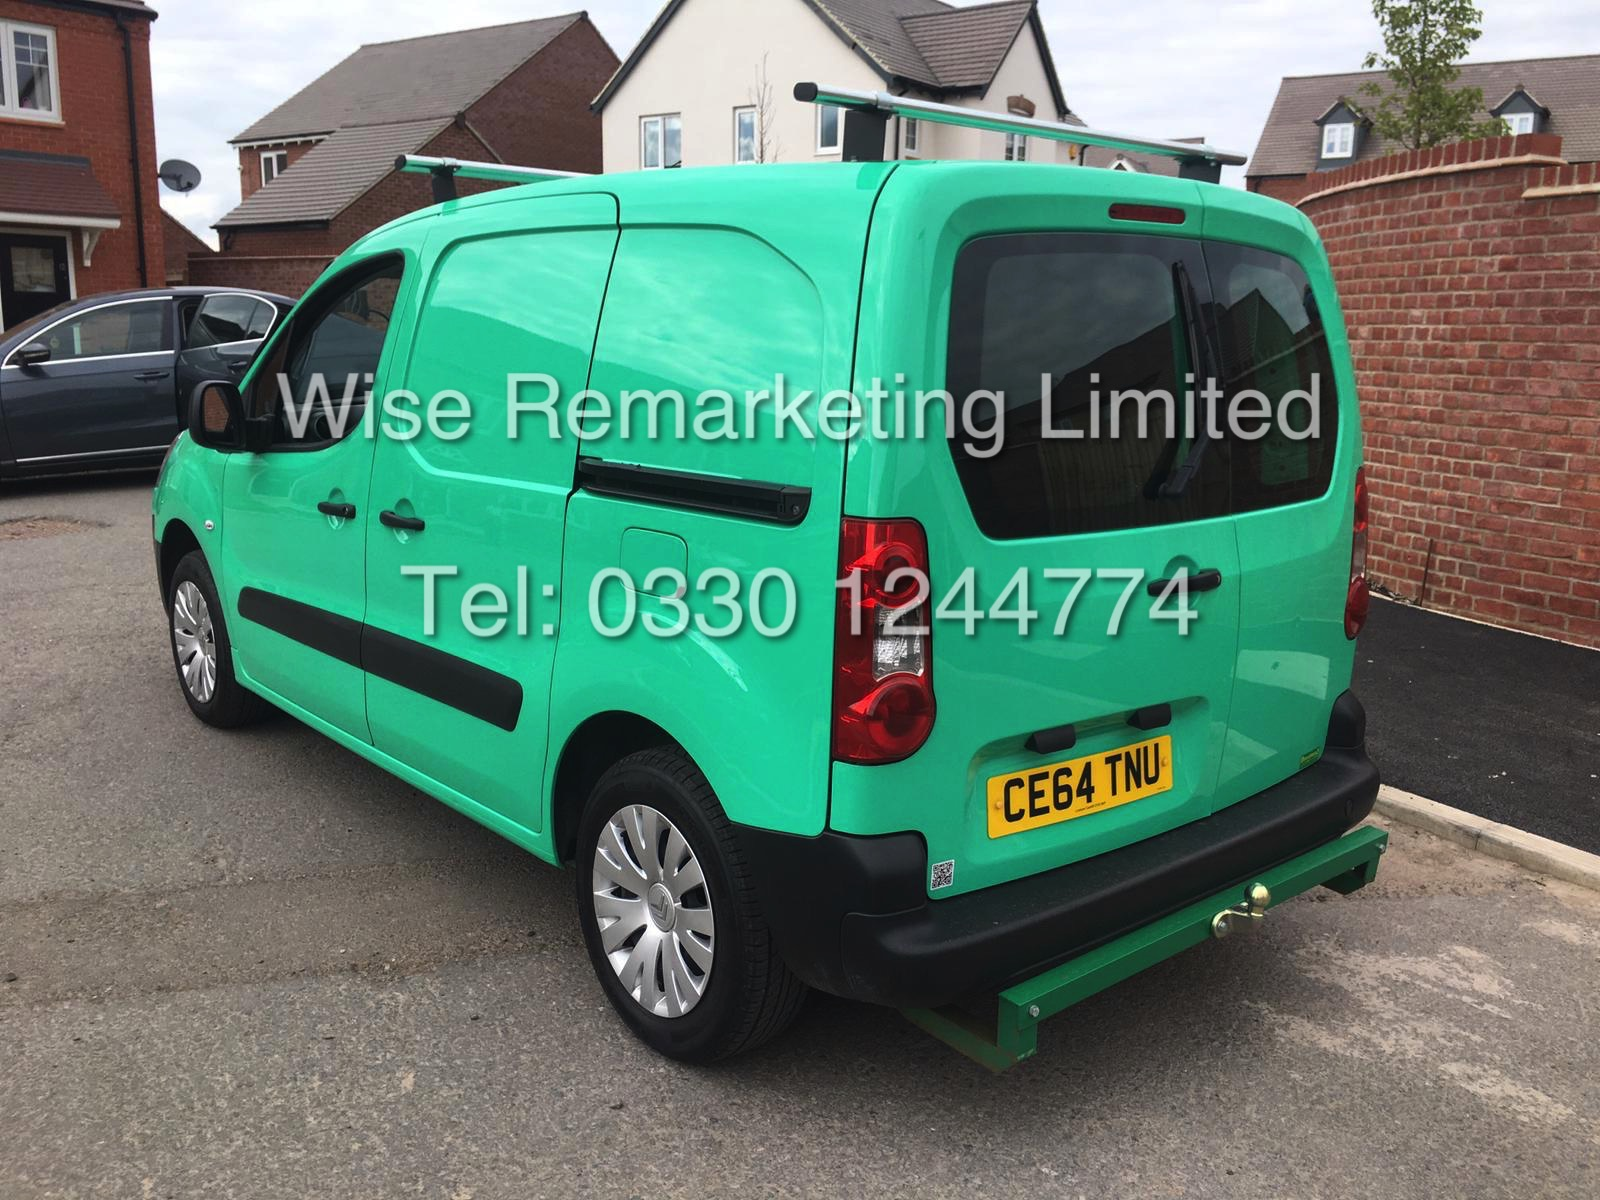 CITROEN BERLINGO 1.6 HDI LX AIRDREAM EDITION *2015 SPEC* - Image 4 of 11